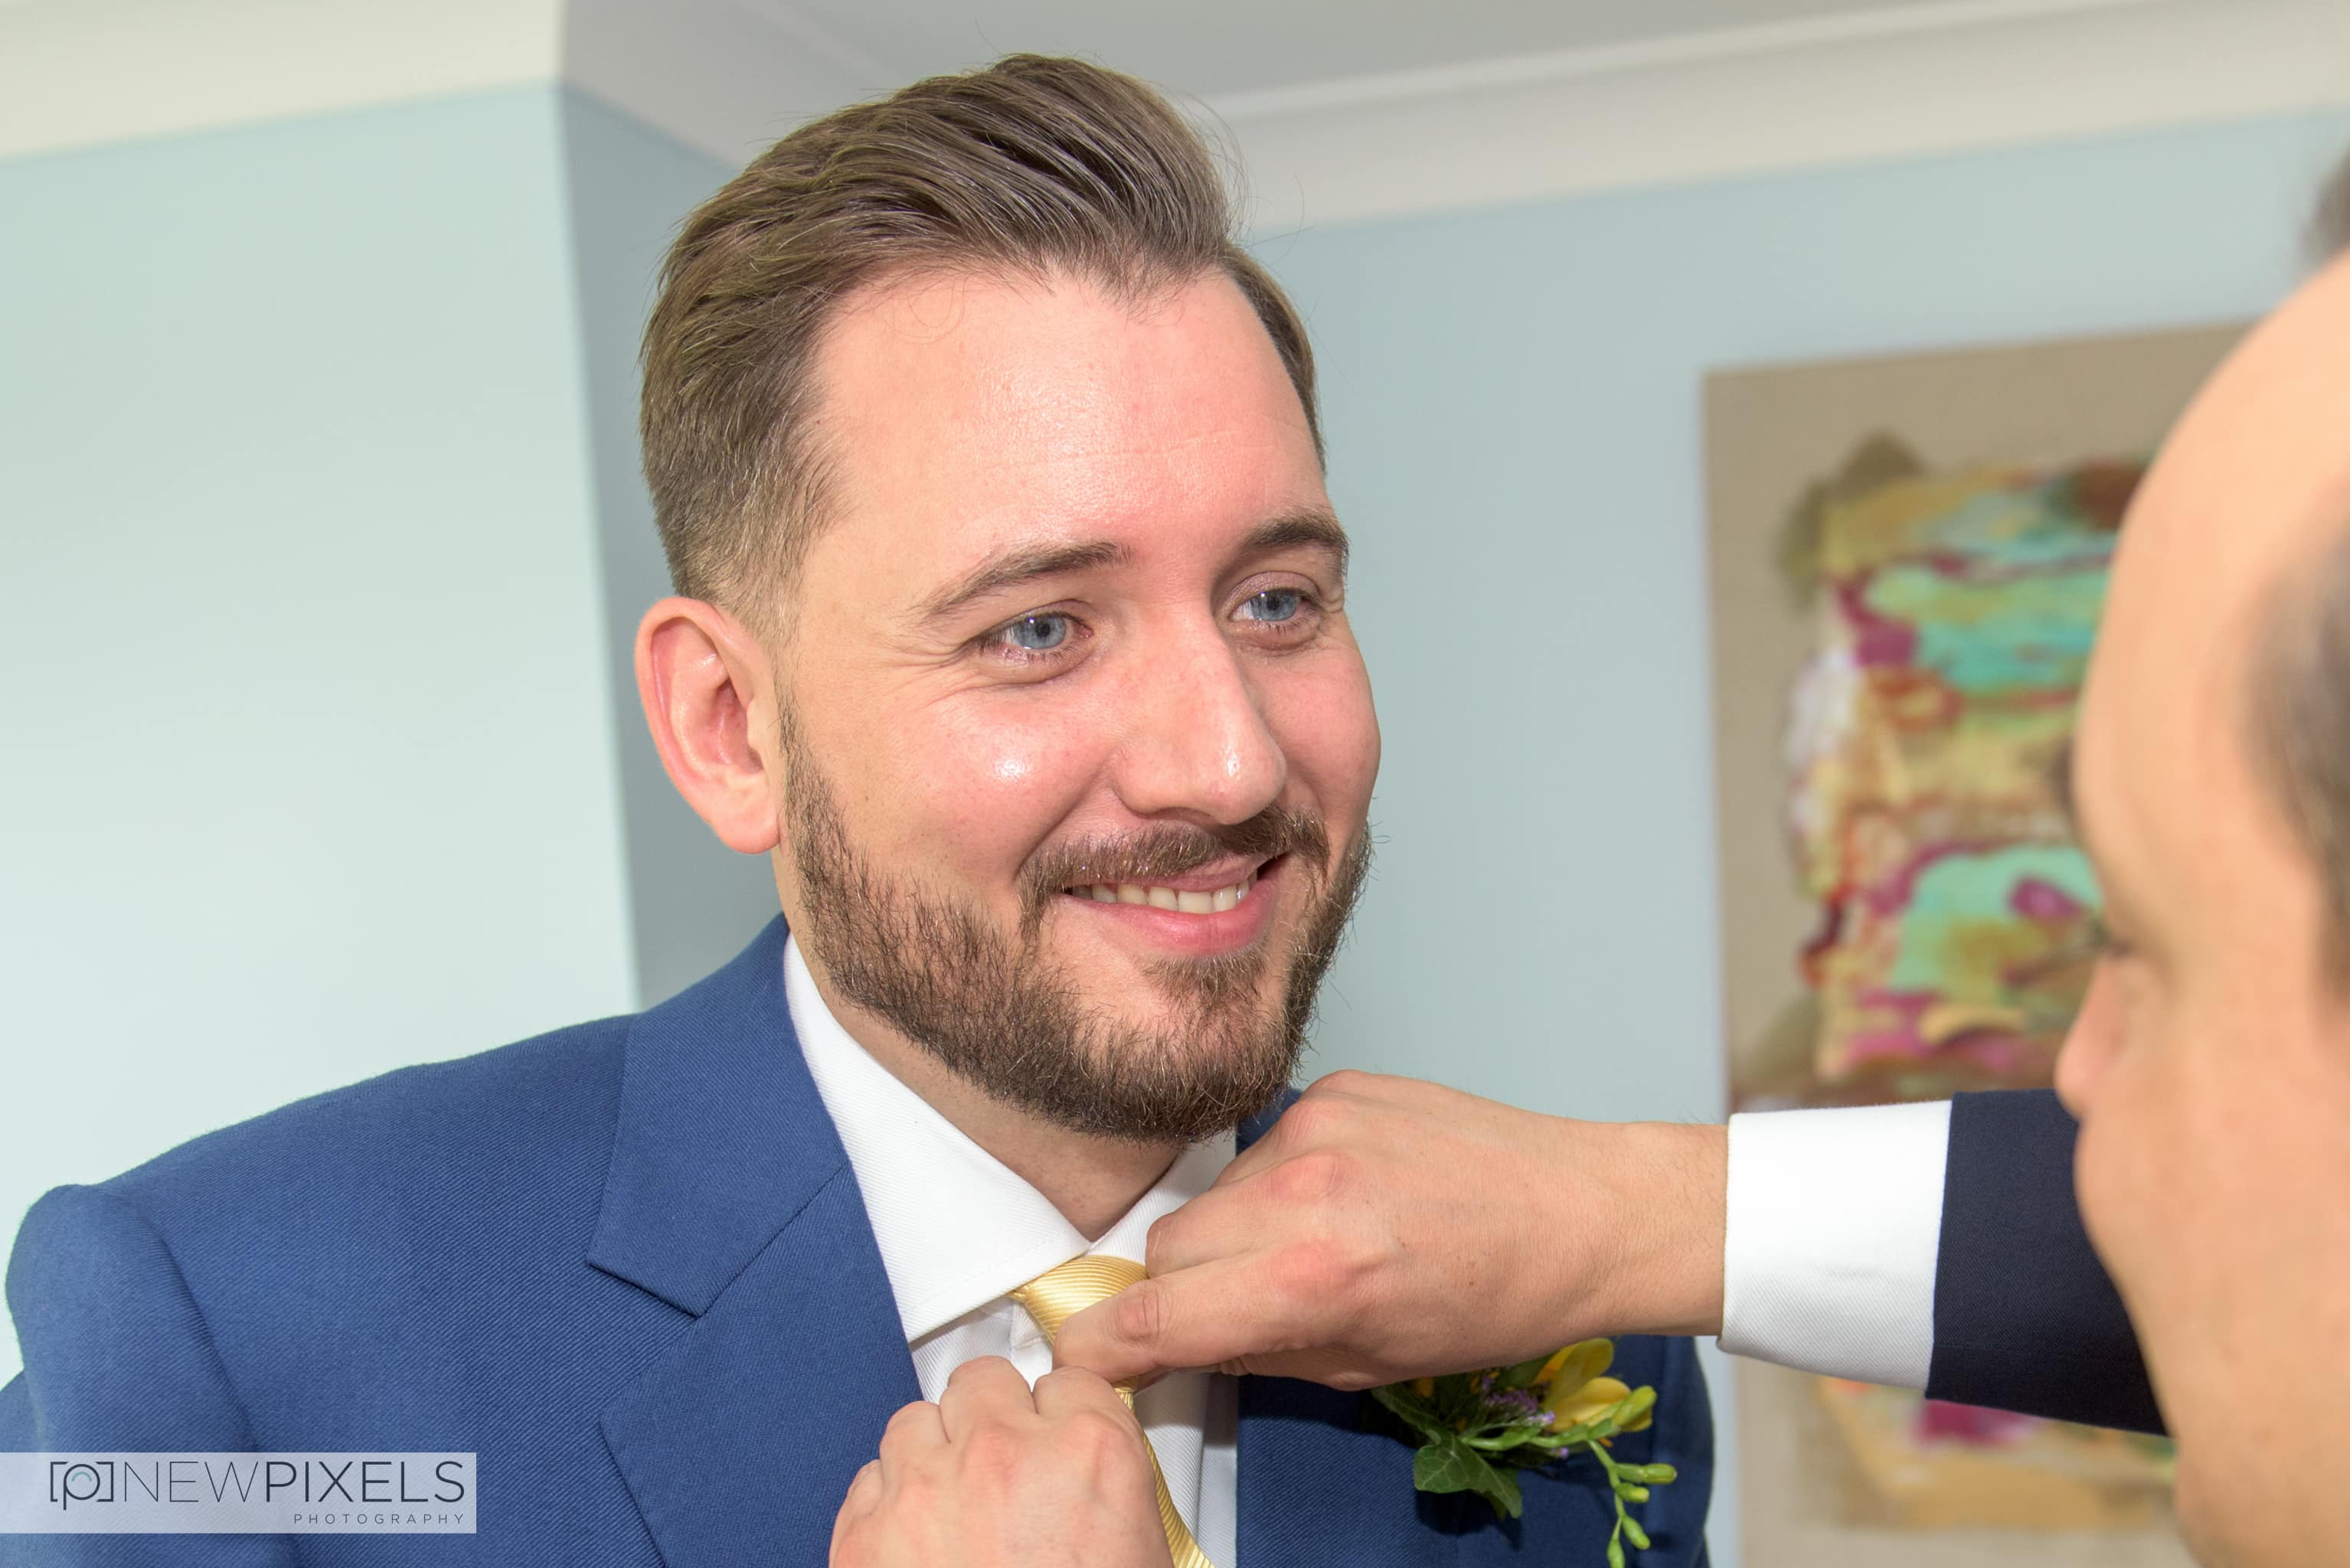 Enfield Wedding Photography- New Pixels-7